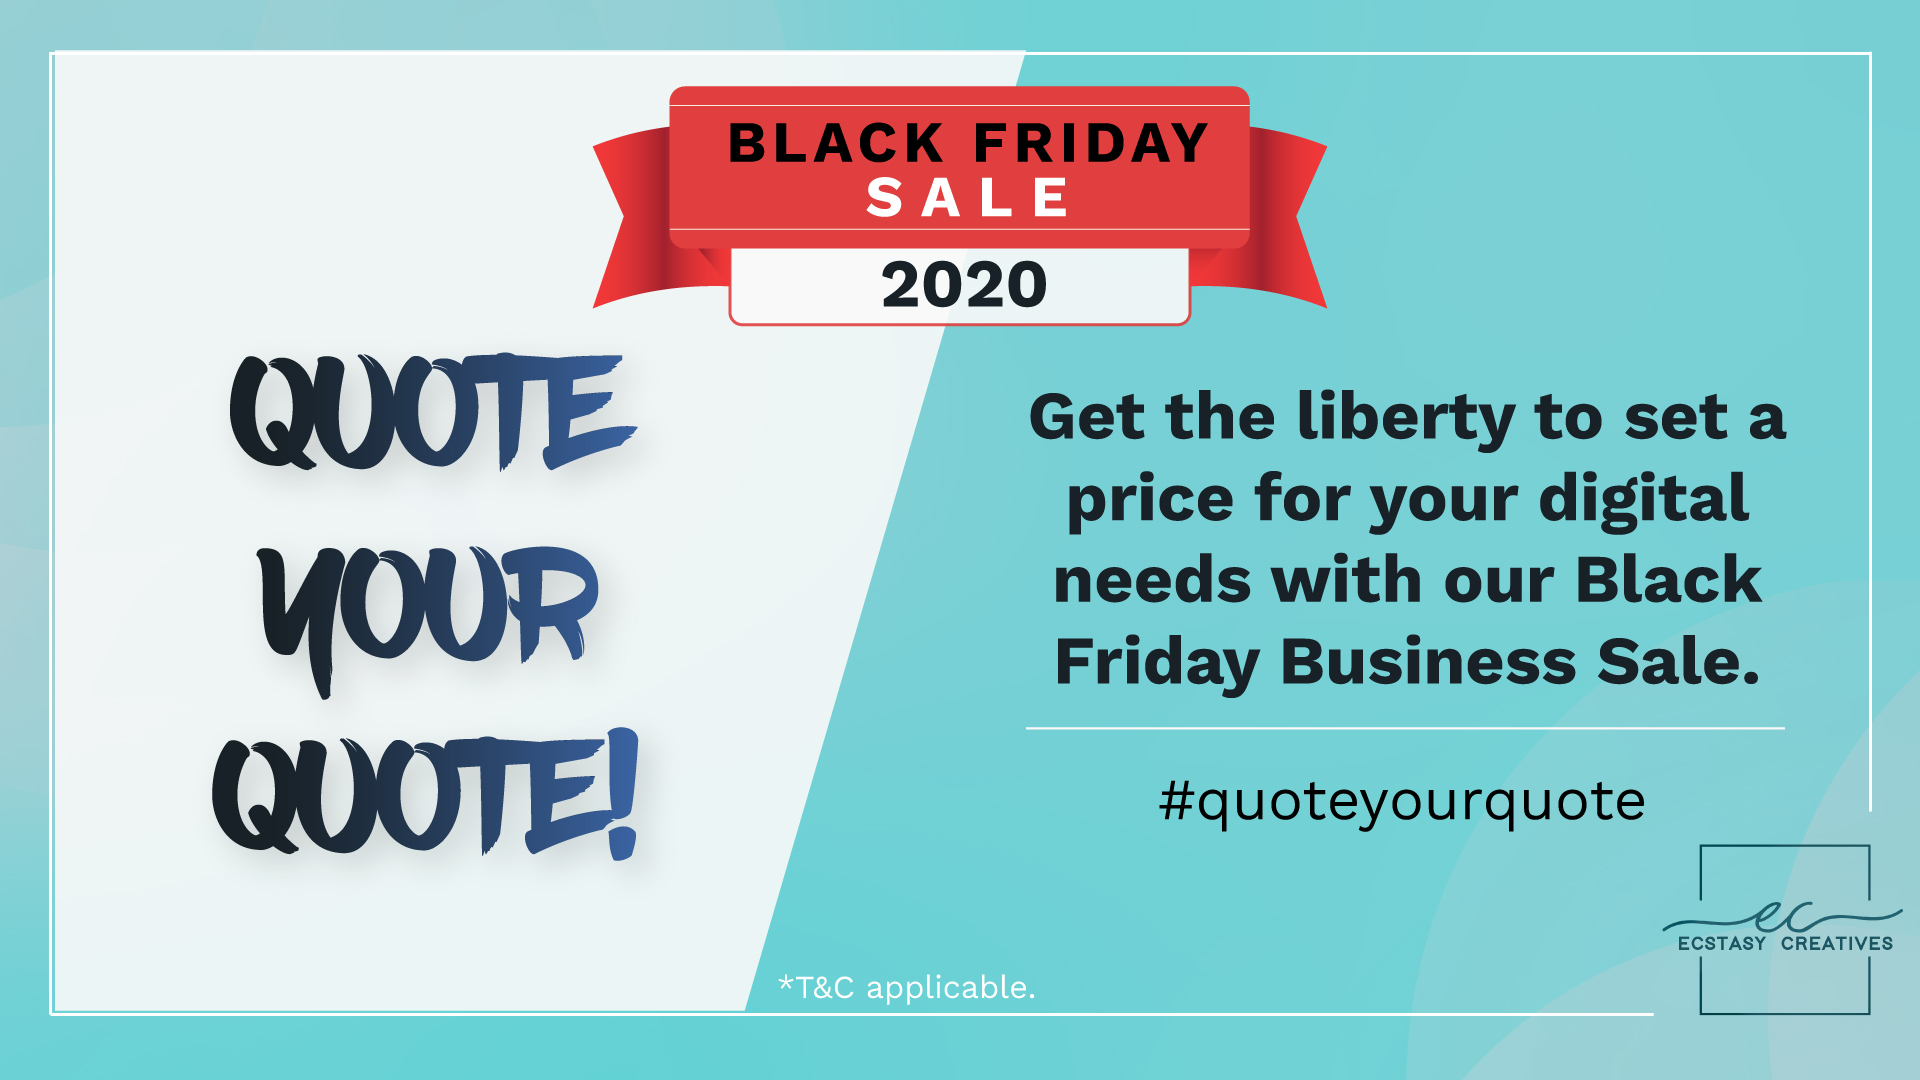 Quote your Quote - Ecstasy's Black Friday sale for Entrepreneurs